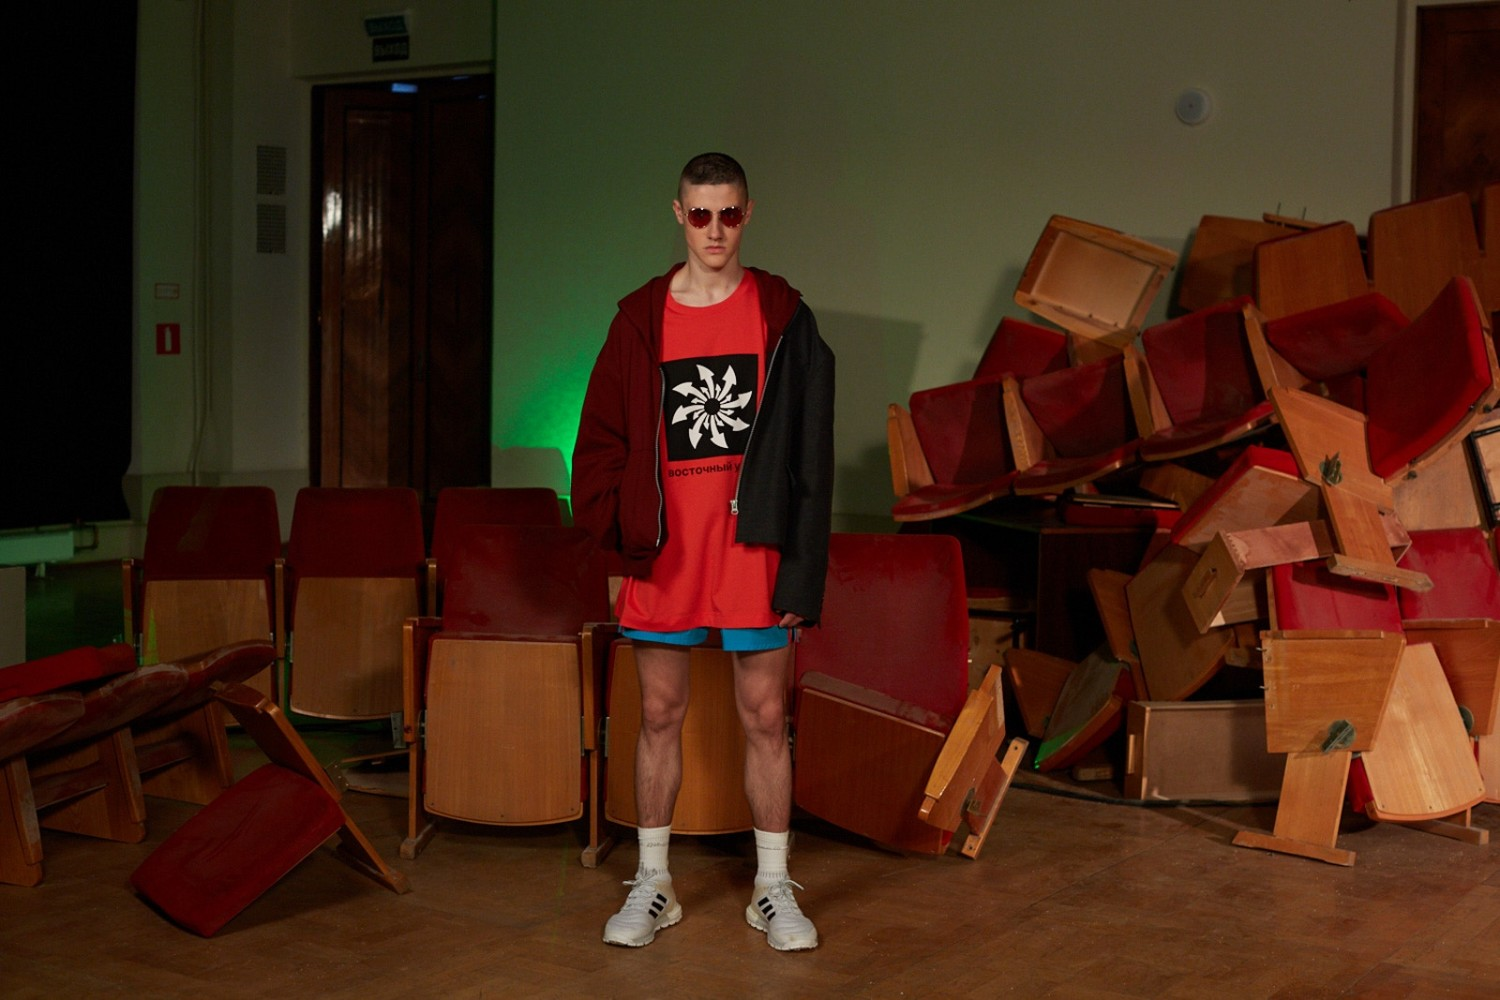 gosha-rubchinskiy-spring-summer-2018-lookbook-3